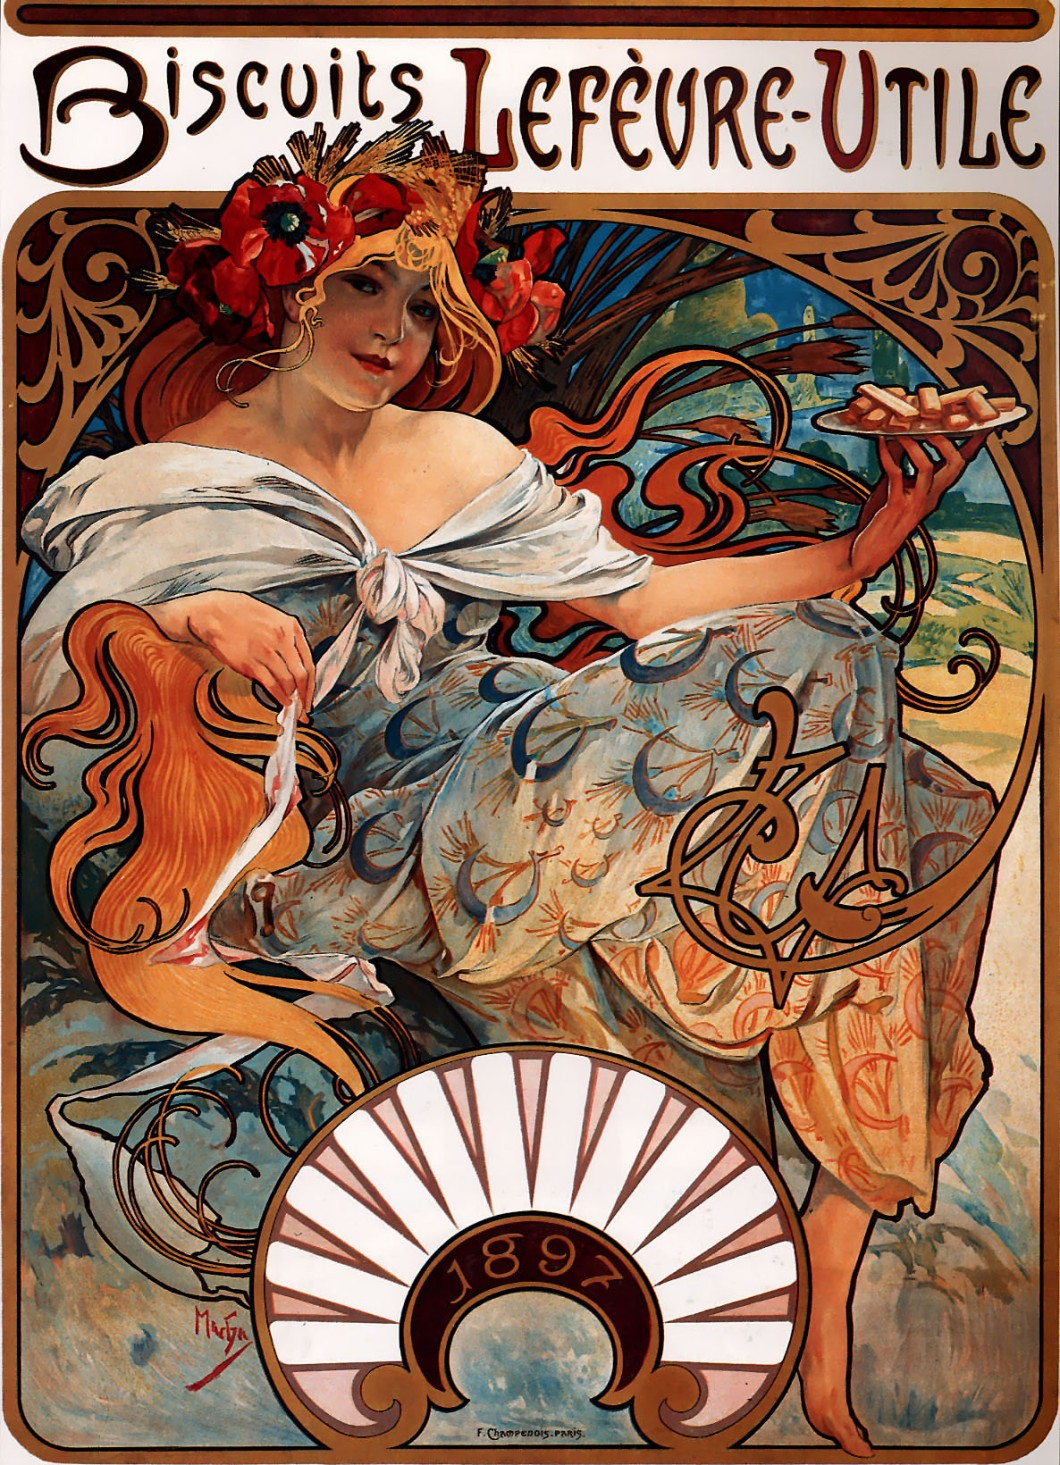 alfons_mucha_-_1896_-_biscuits_lefc3a8vre-utile